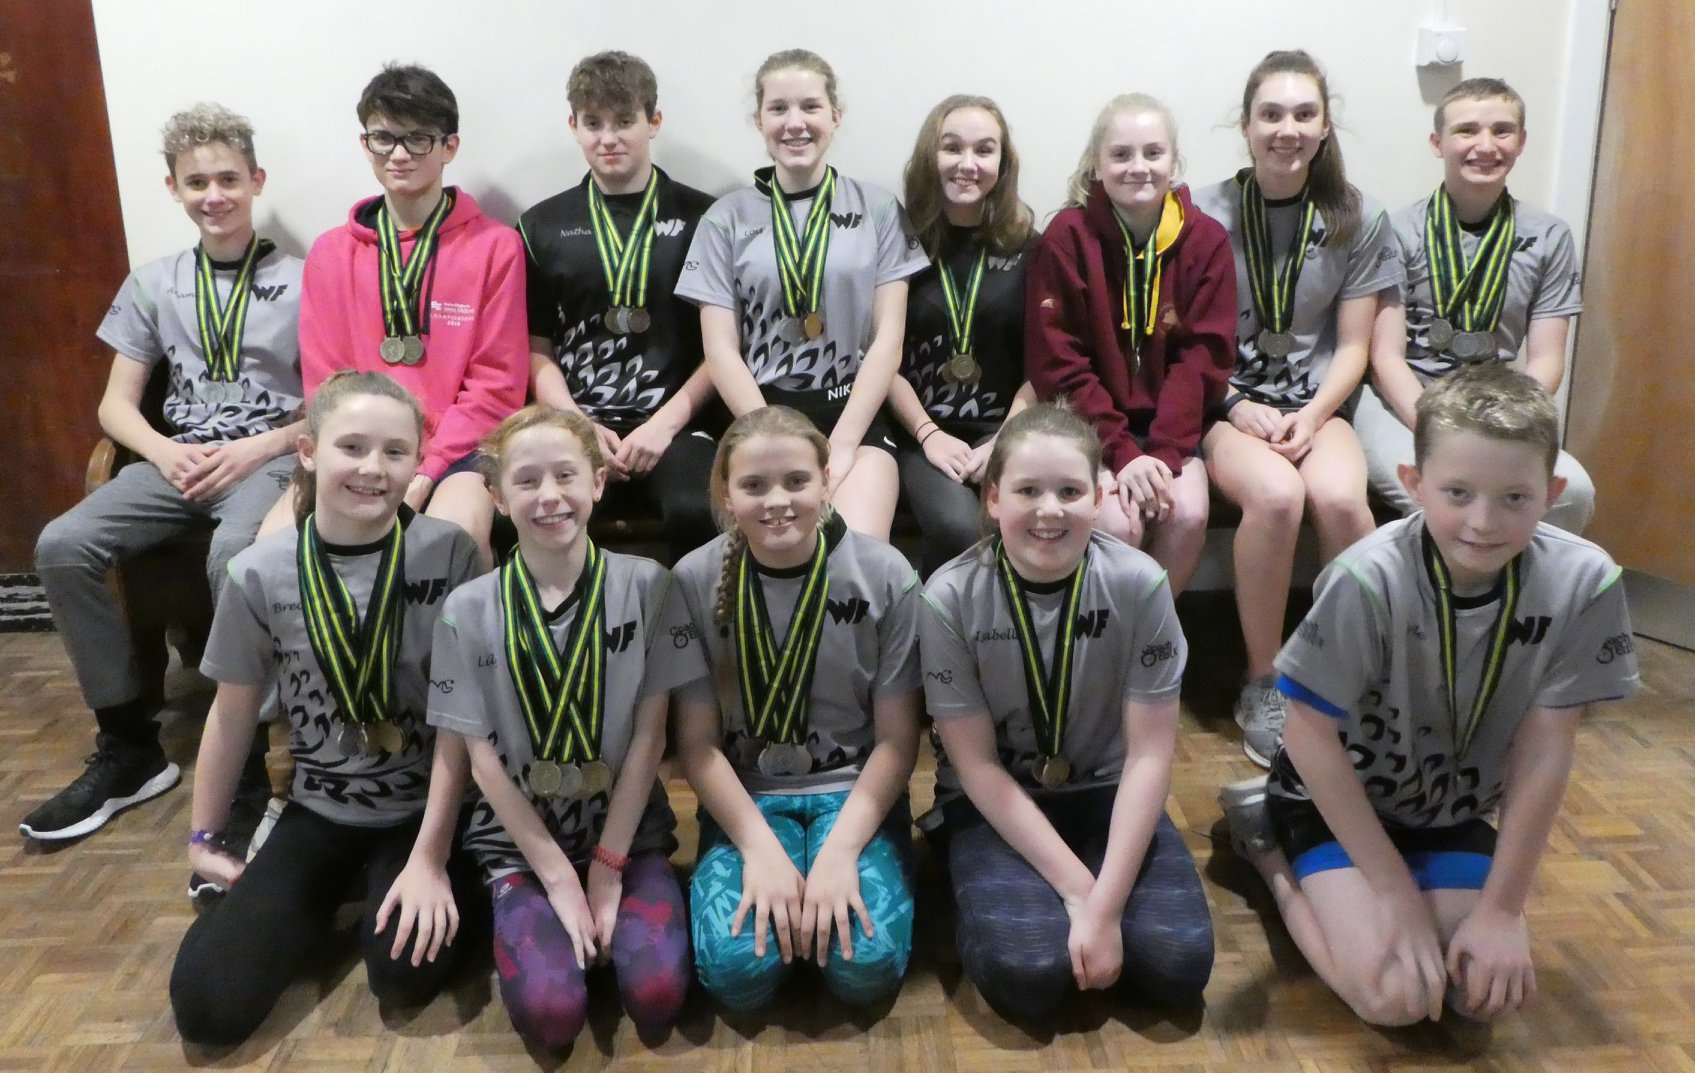 GLOUCESTER LEVEL 2 OPEN MEET – 85 Medals & 2nd Place!!